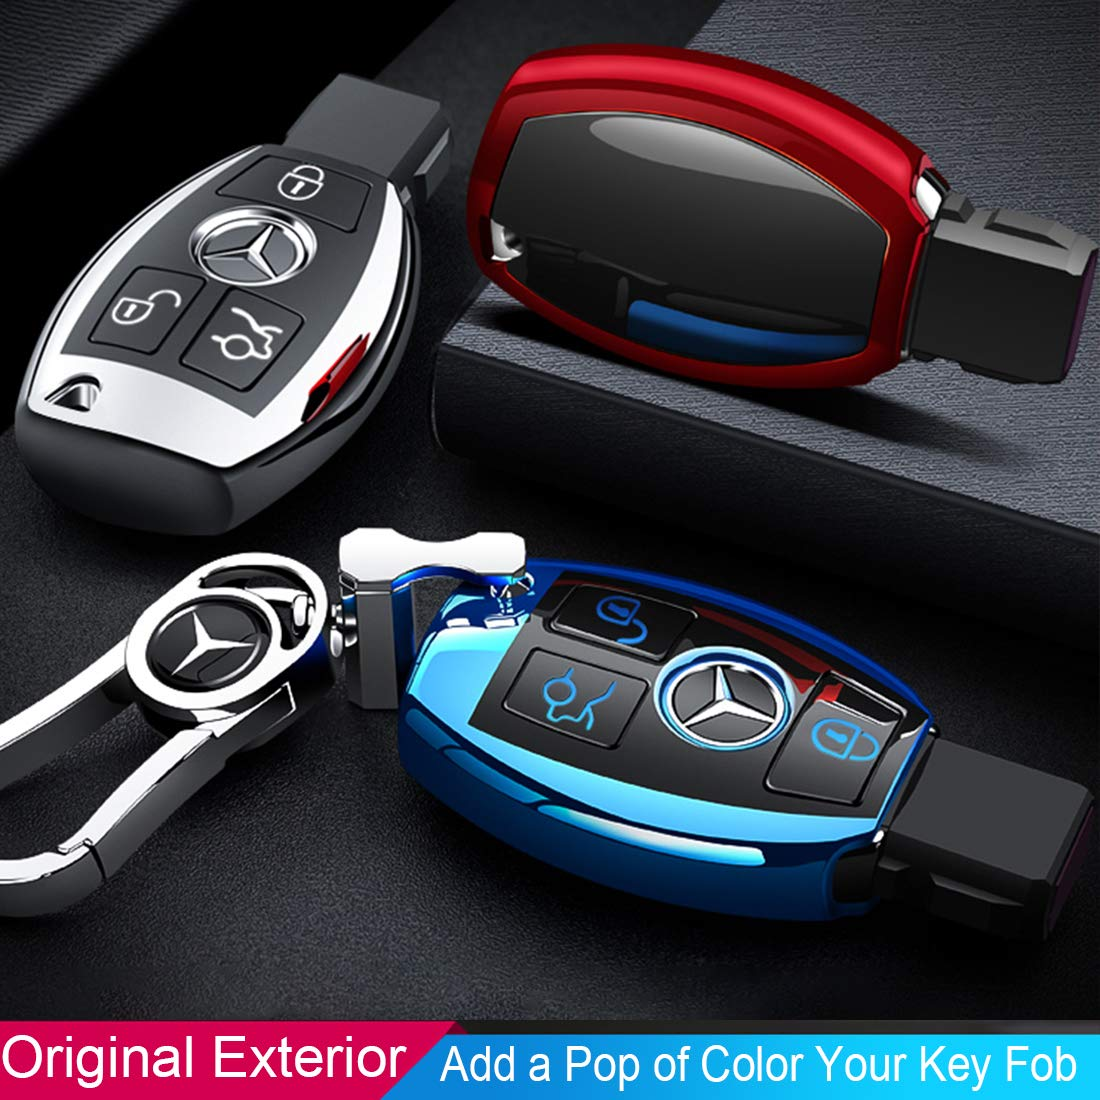 Intermerge for Mercedes Benz Key Fob Cover Premium Soft TPU Key Case Cover Compatible with Mercedes Benz C E S M CLS CLK G Class Keyless Smart Key Fob/_Gold Color